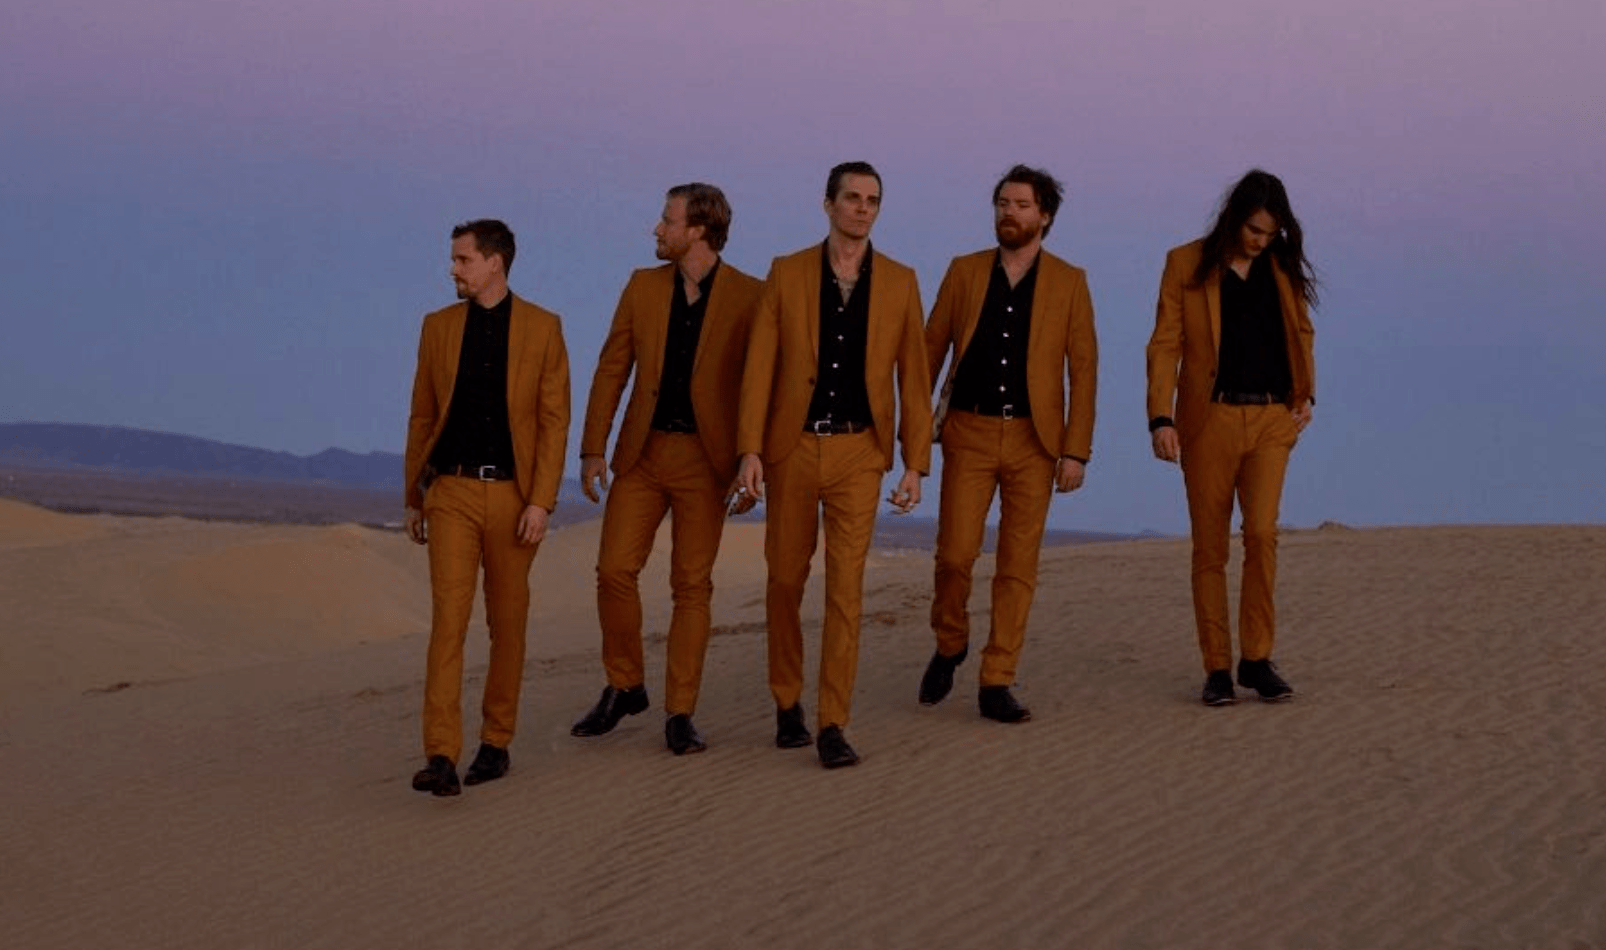 Everything You Need To Know About The Maine's New Album, Plus Listen To Their Brand New Single